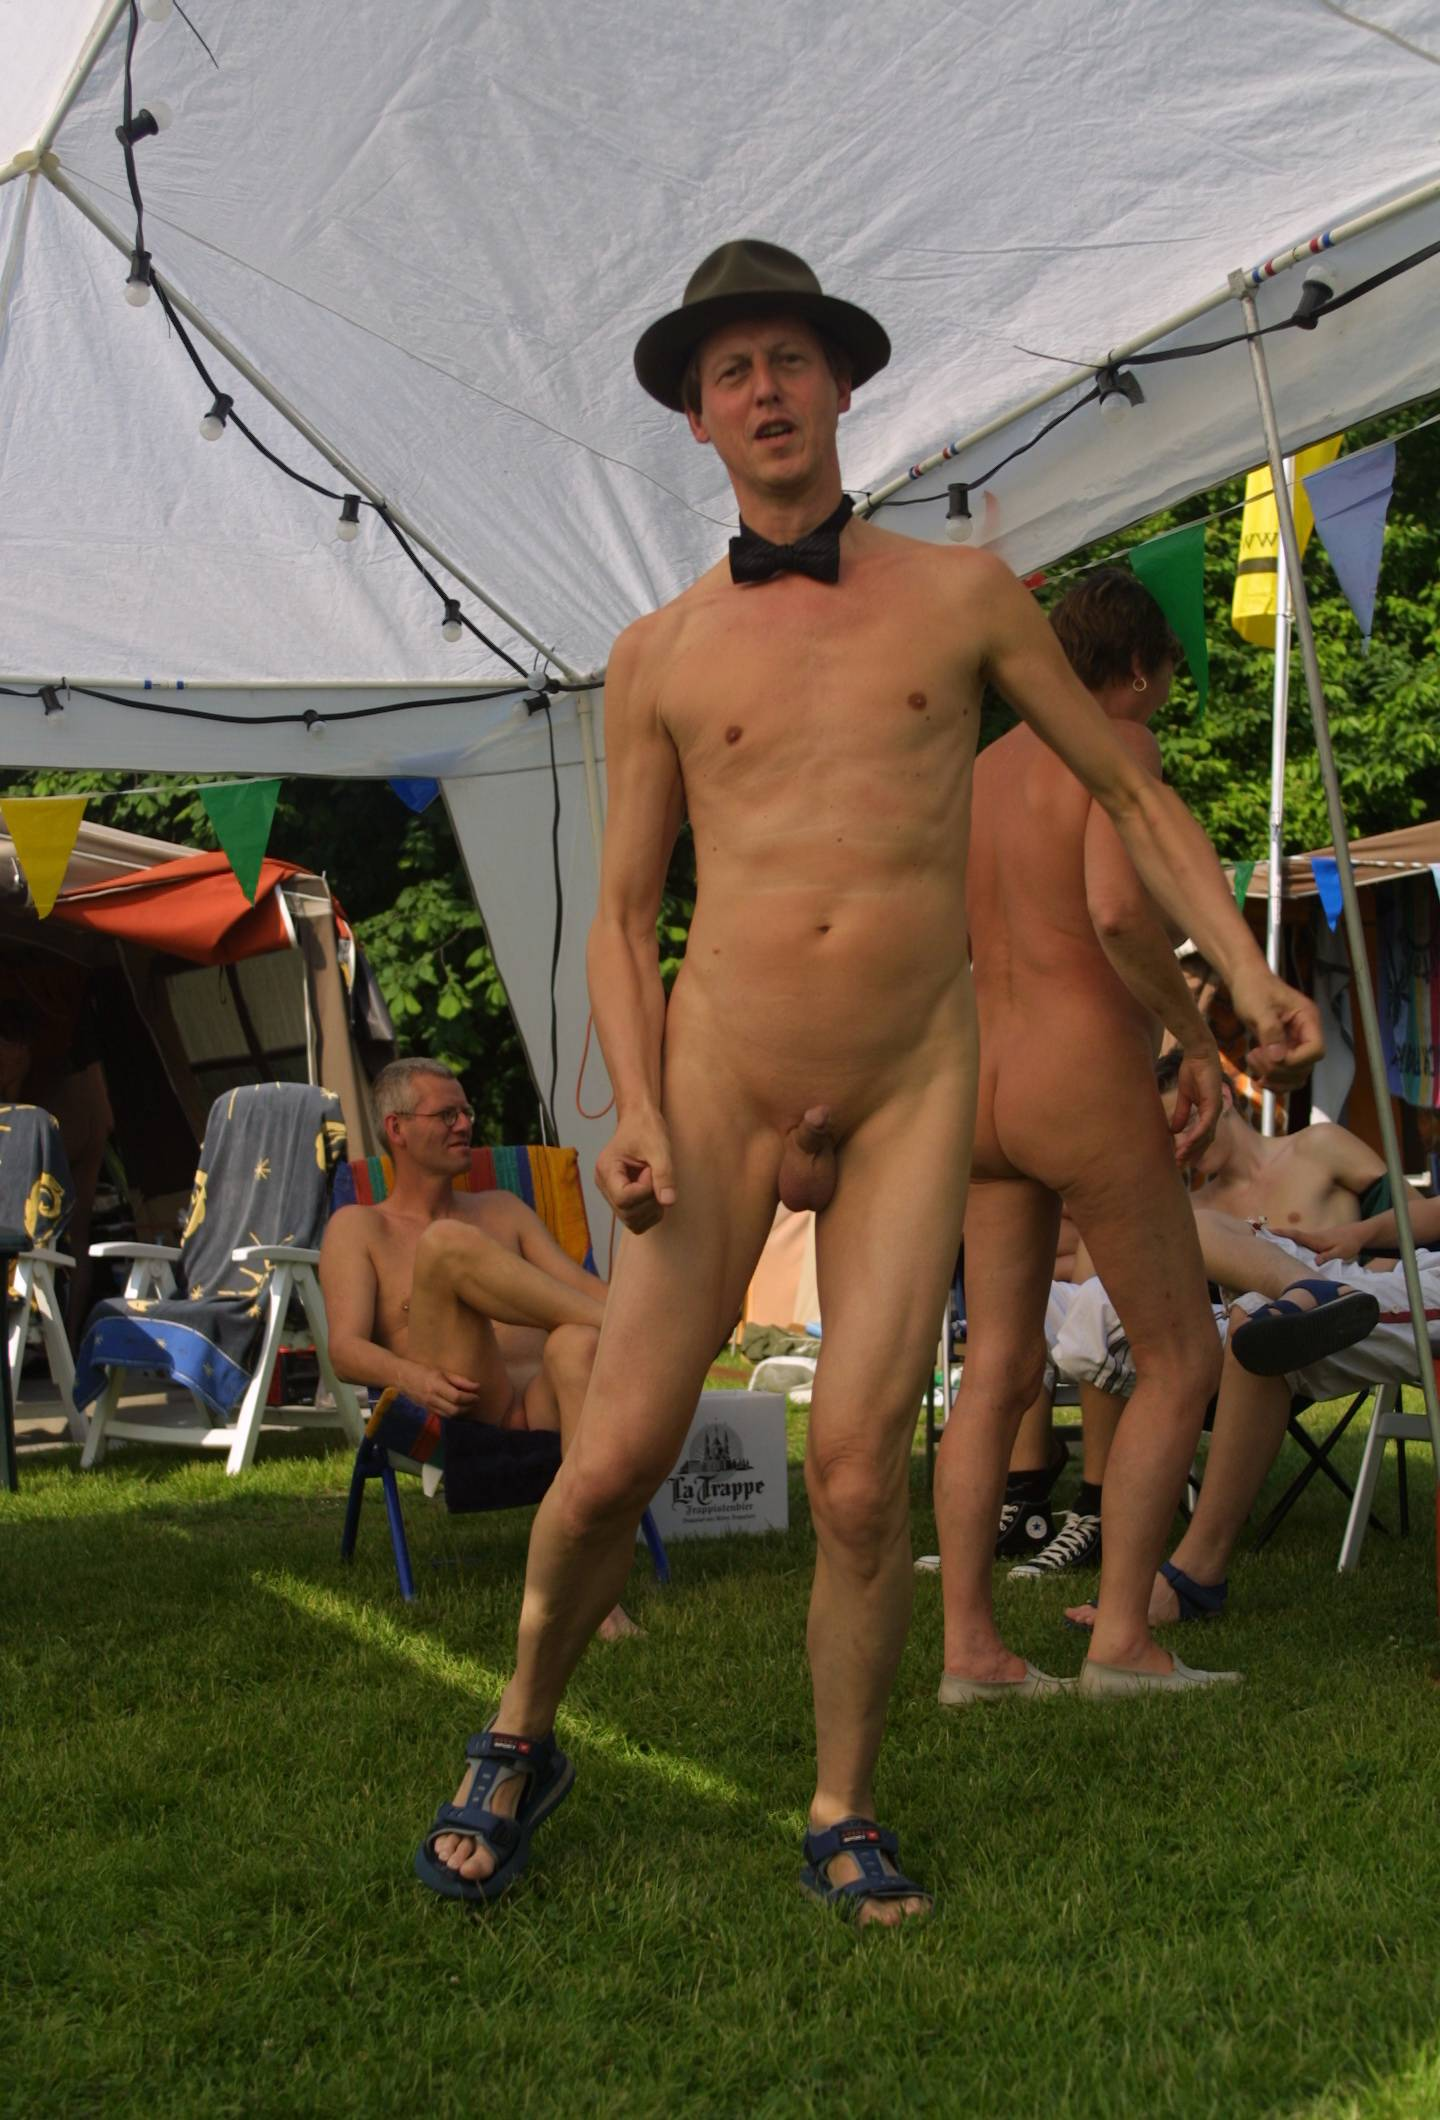 Pure Nudism Photos-Holland Show and Relaxation - 4